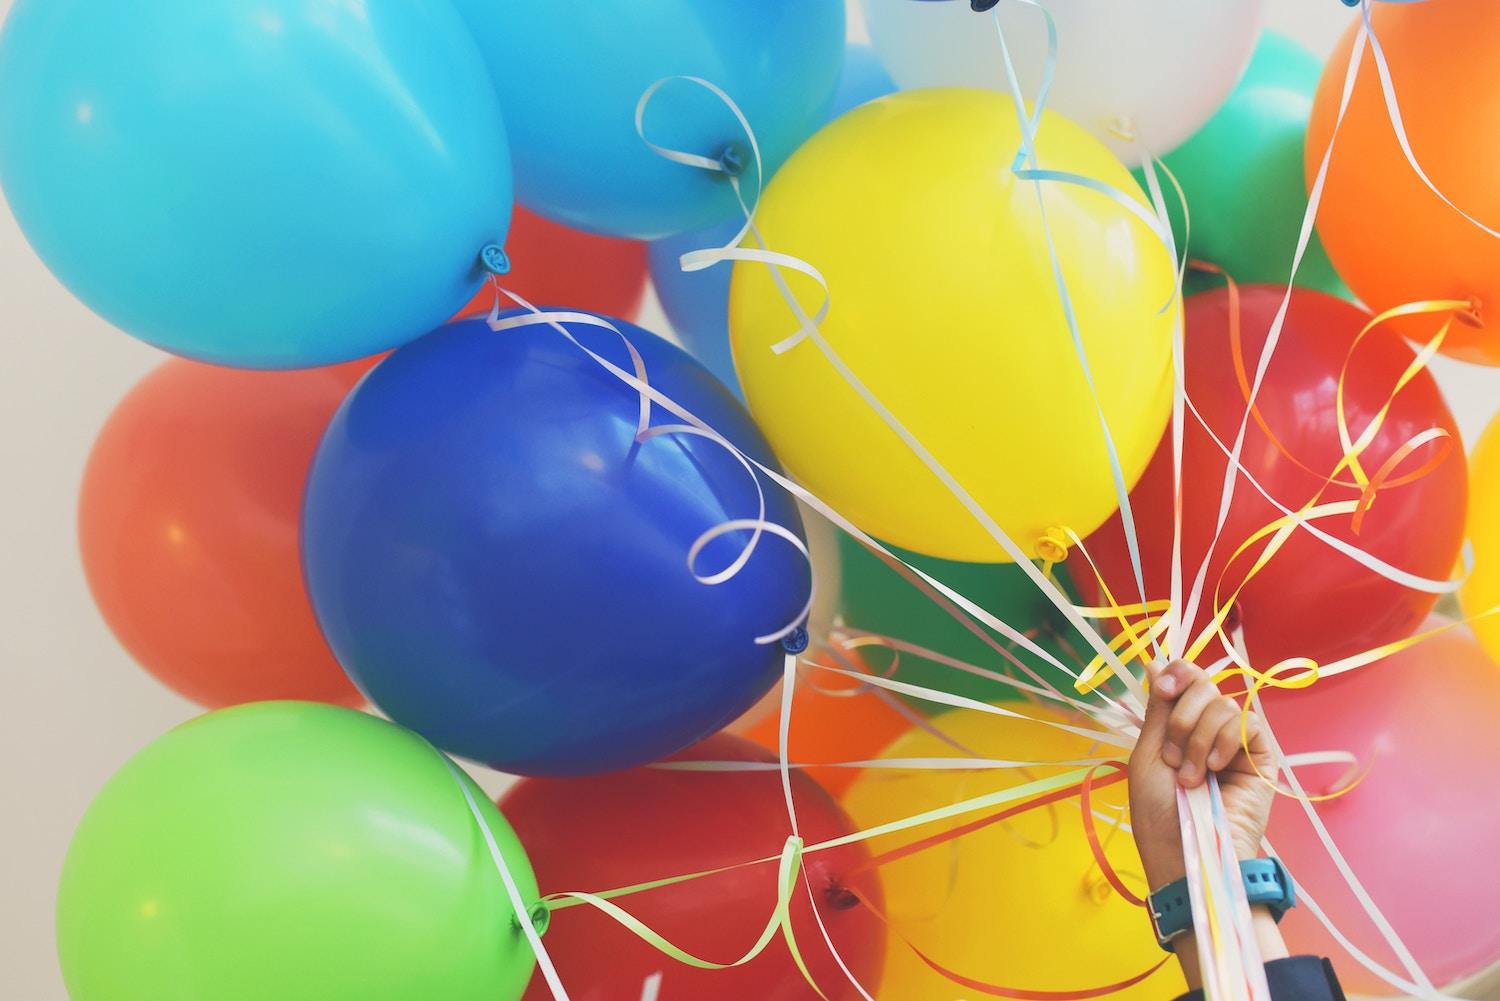 balloons anniversary of collective gaelle-marcel-357627-unsplash.jpg